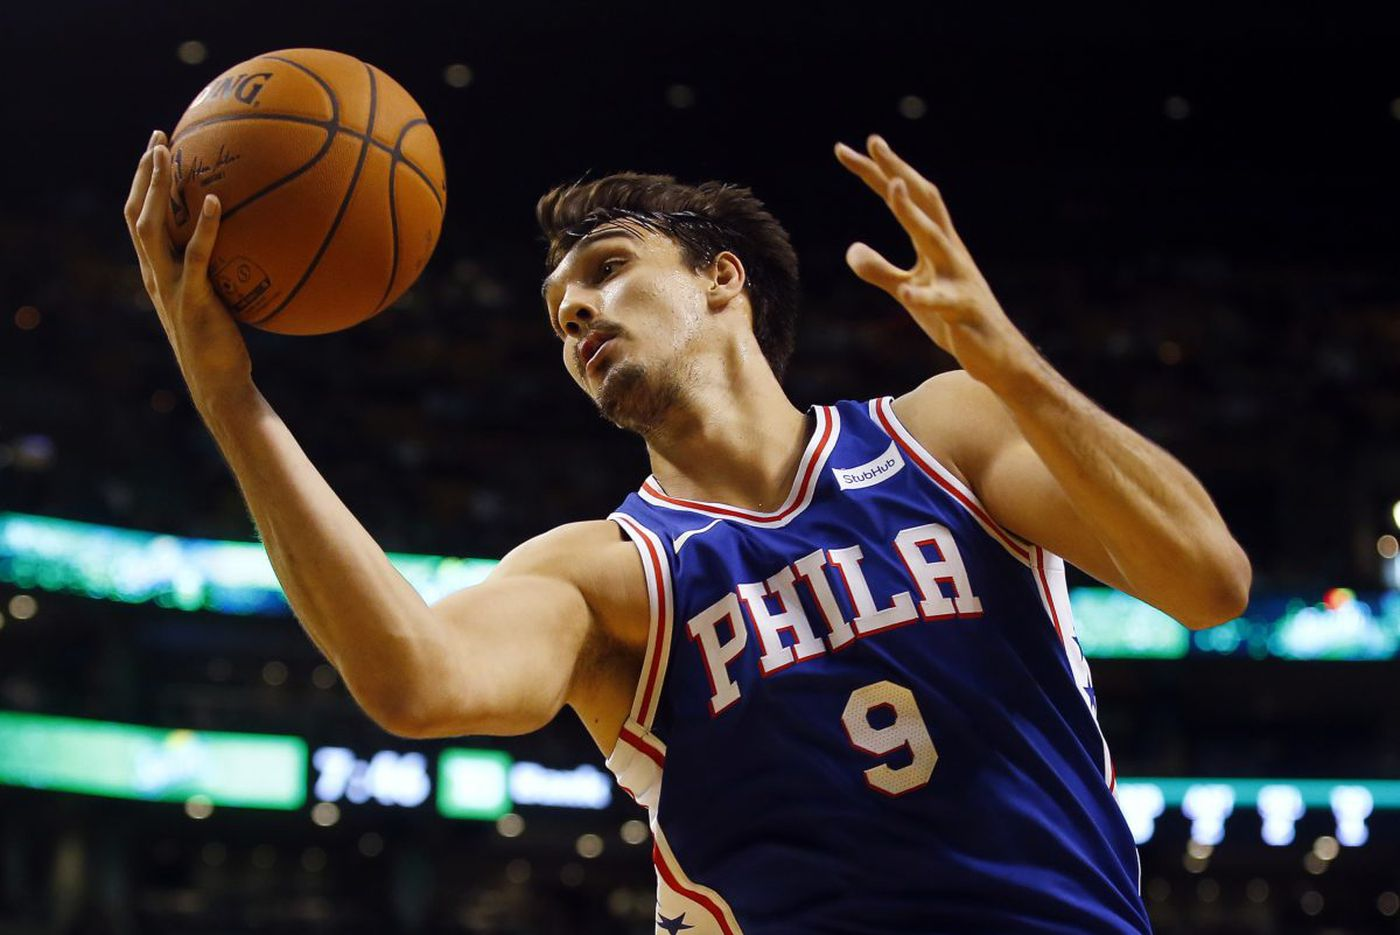 Sixers' Dario Saric is tirelessly improving his game